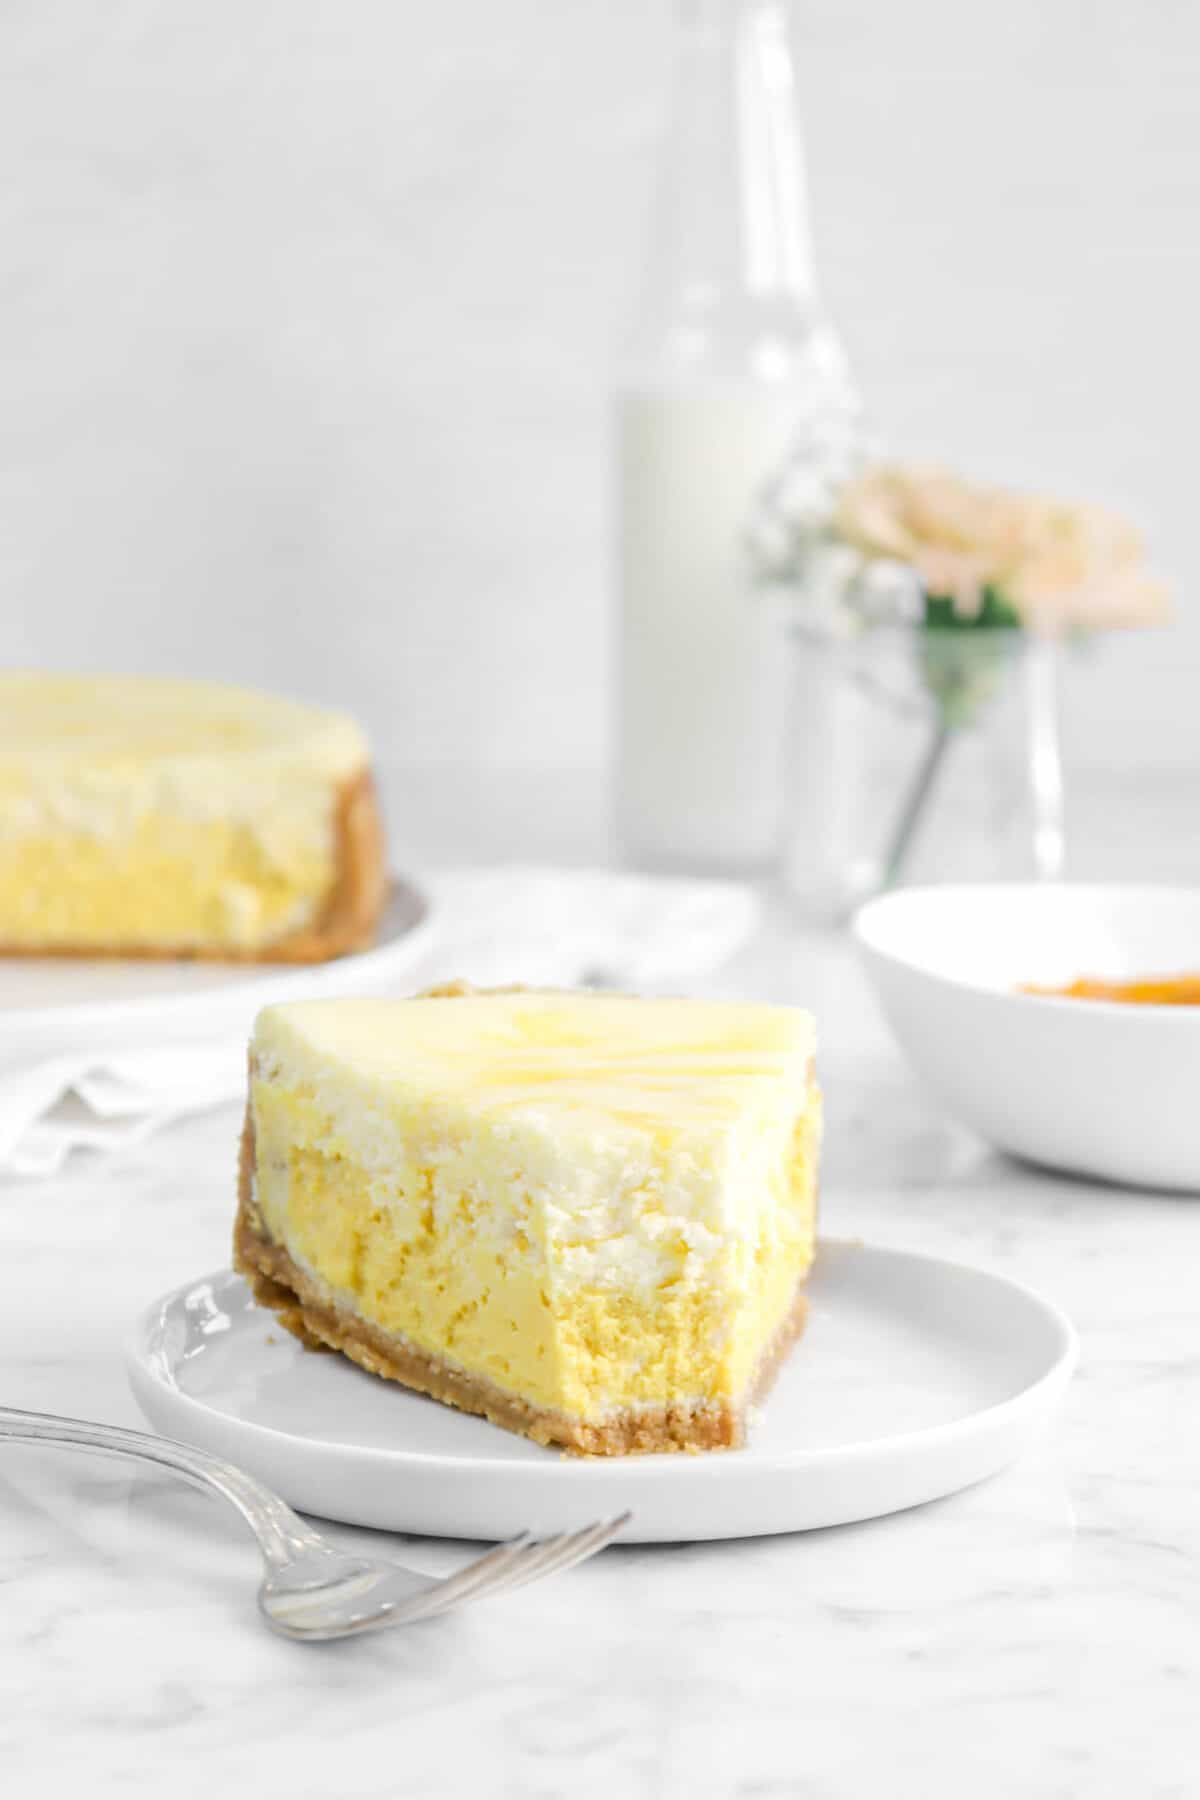 cheesecake slice on a white plate with flowers and milk glass behind